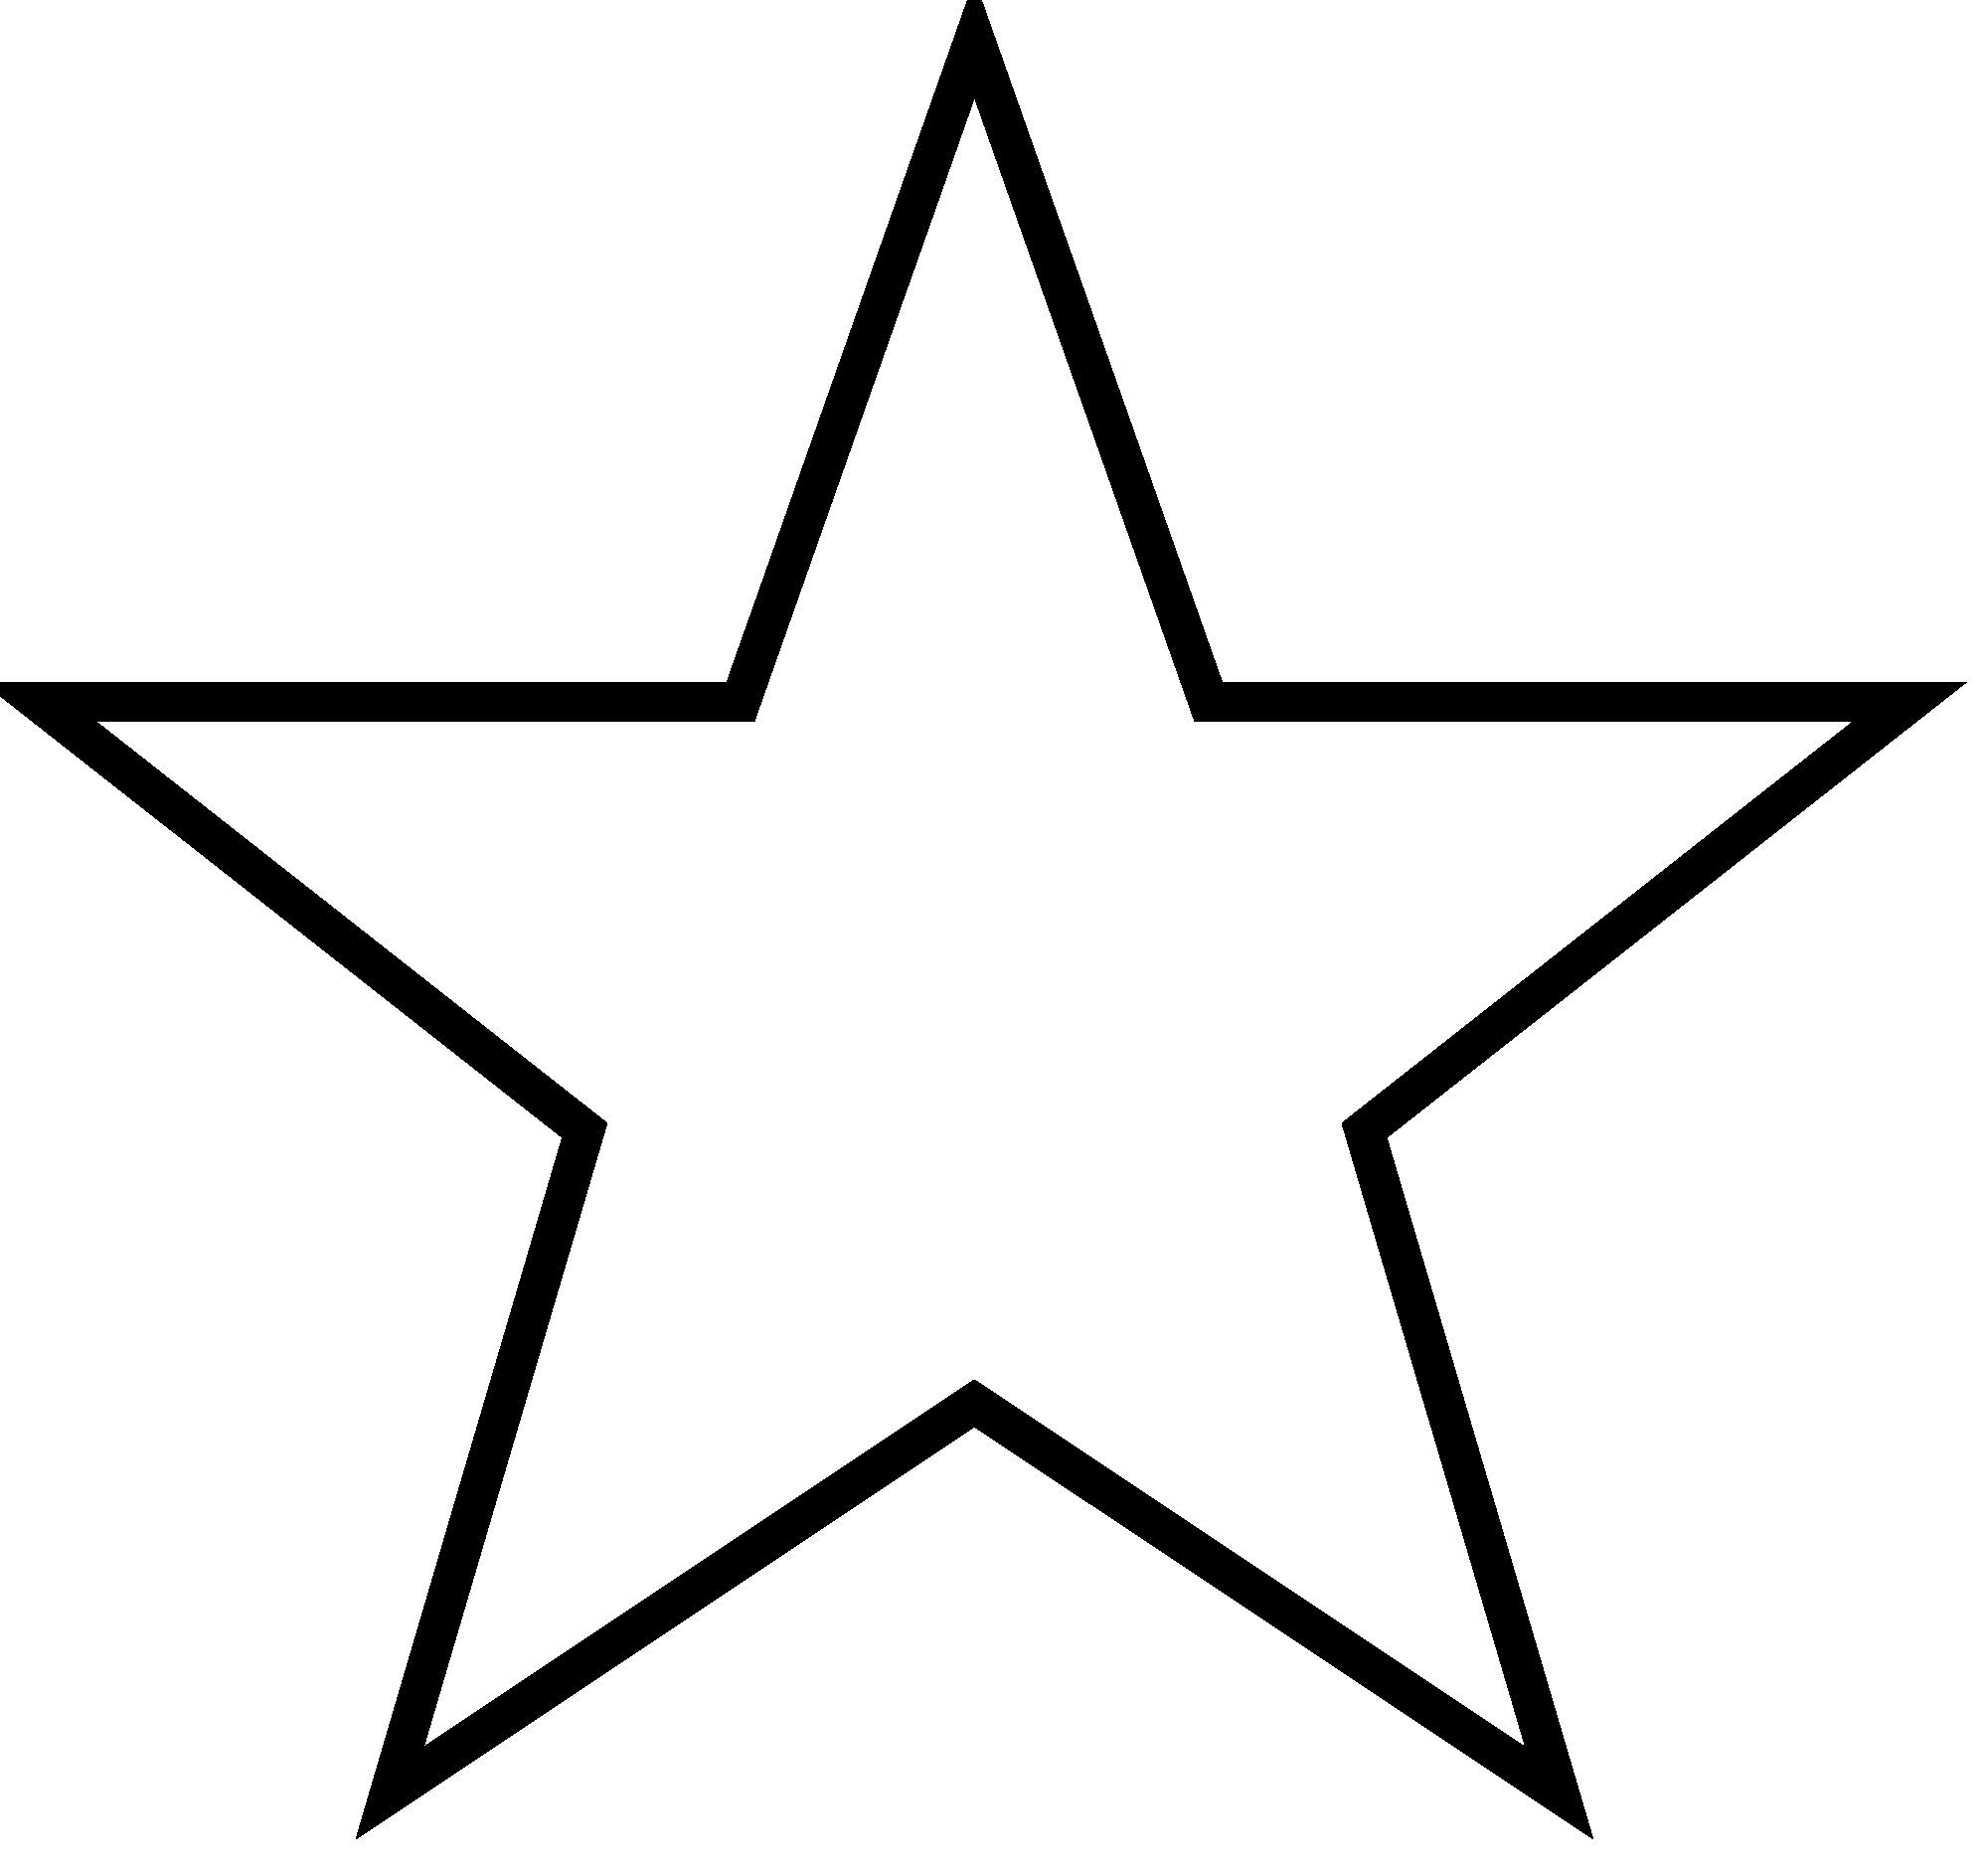 5 Point Star Outline Thatswhatsup Elias Tattoo Ideas And Designs